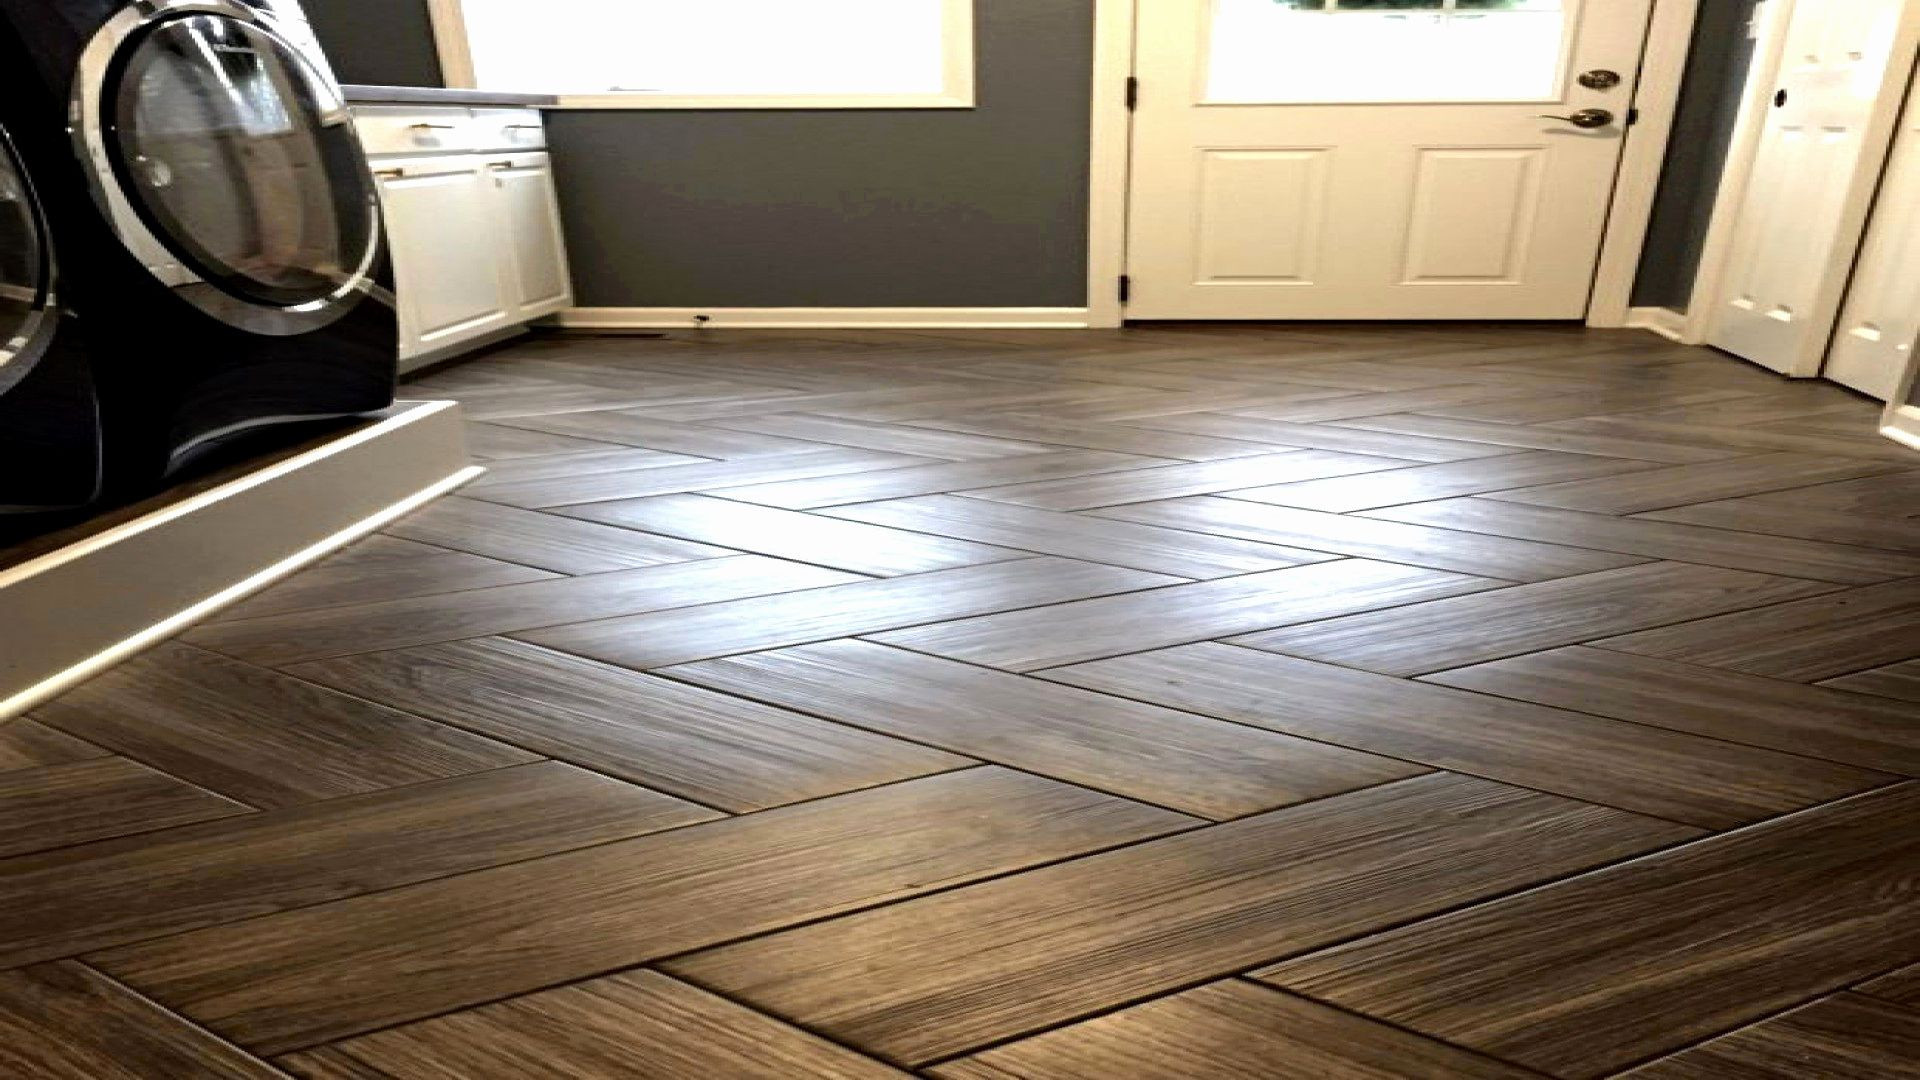 hardwood flooring and installation cost of wood flooring cost 40 how to install flooring concept floor plan ideas pertaining to wood flooring cost 40 how to install flooring concept